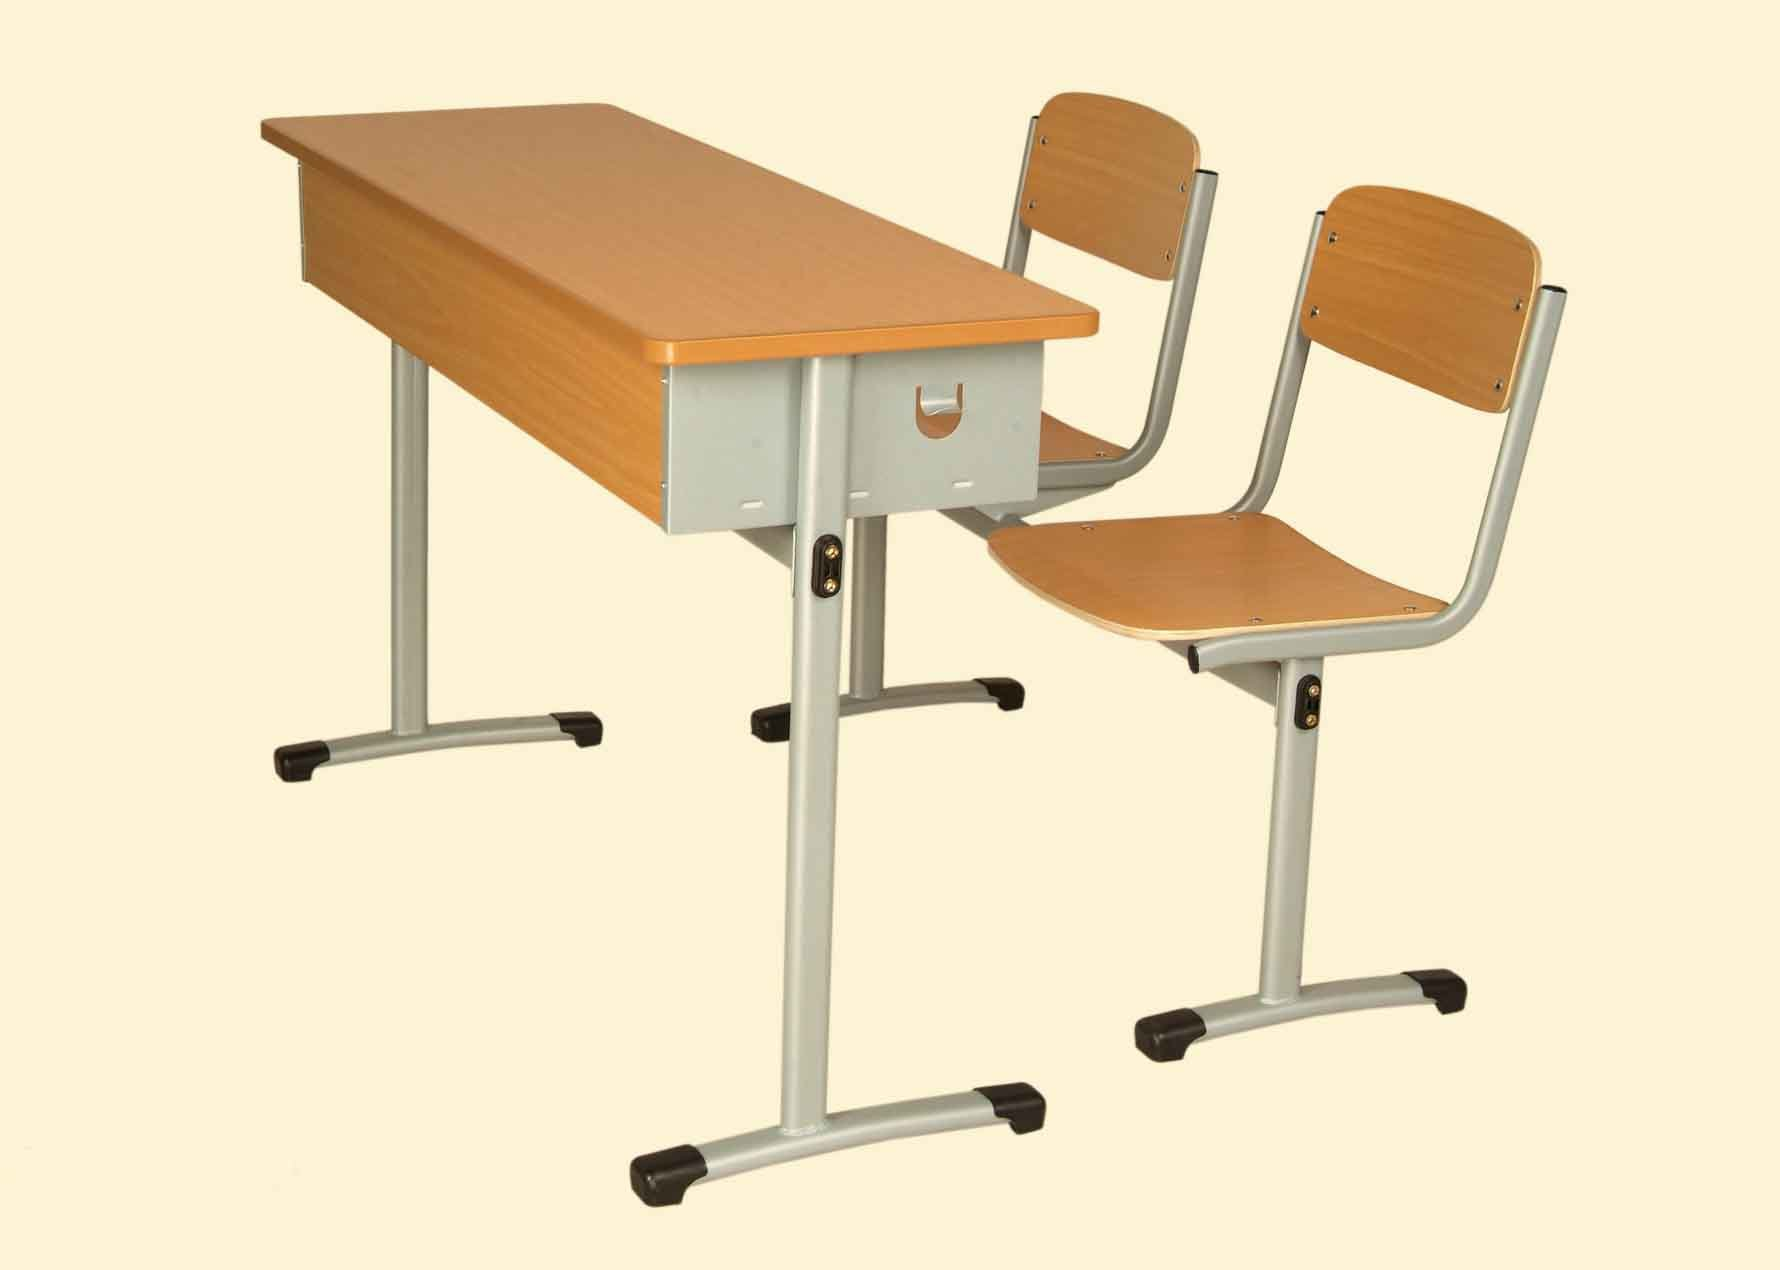 school furniture Research paper furniture for 21st century schools page 2 be flexible and adaptable – flexible and adaptable spaces and furniture that can change throughout the school.